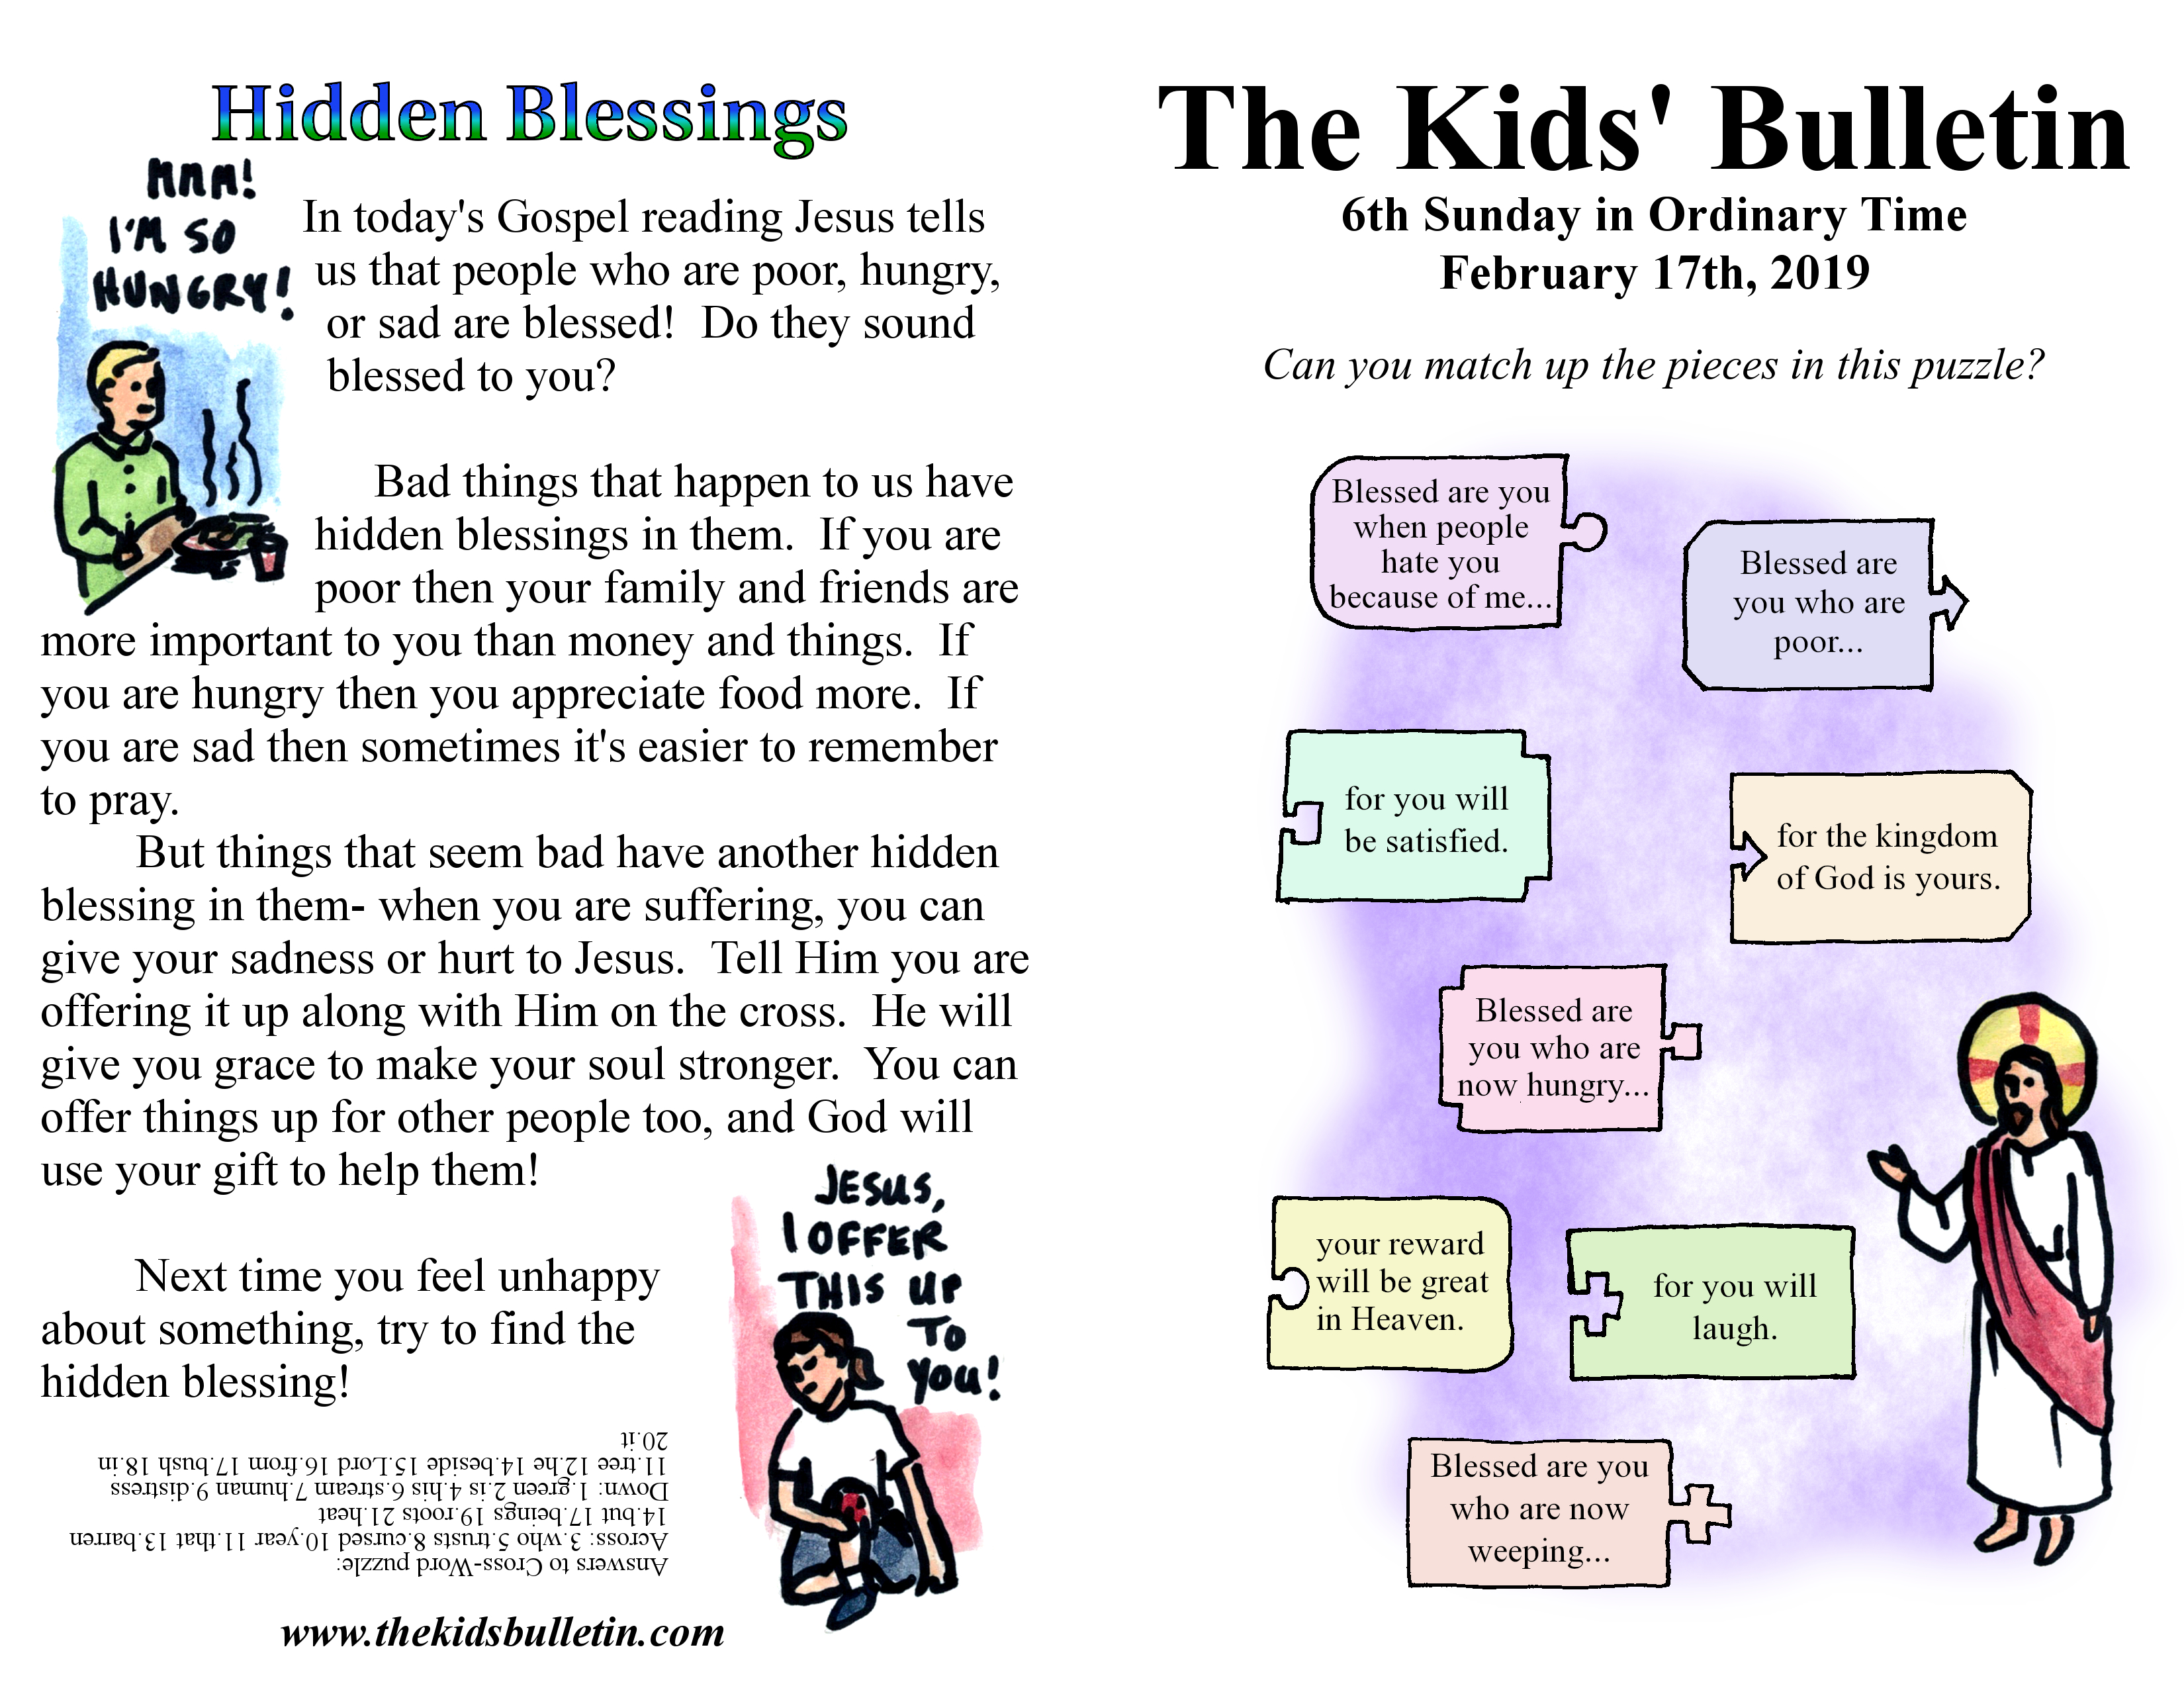 The Kids Bulletin For Sunday February 17th